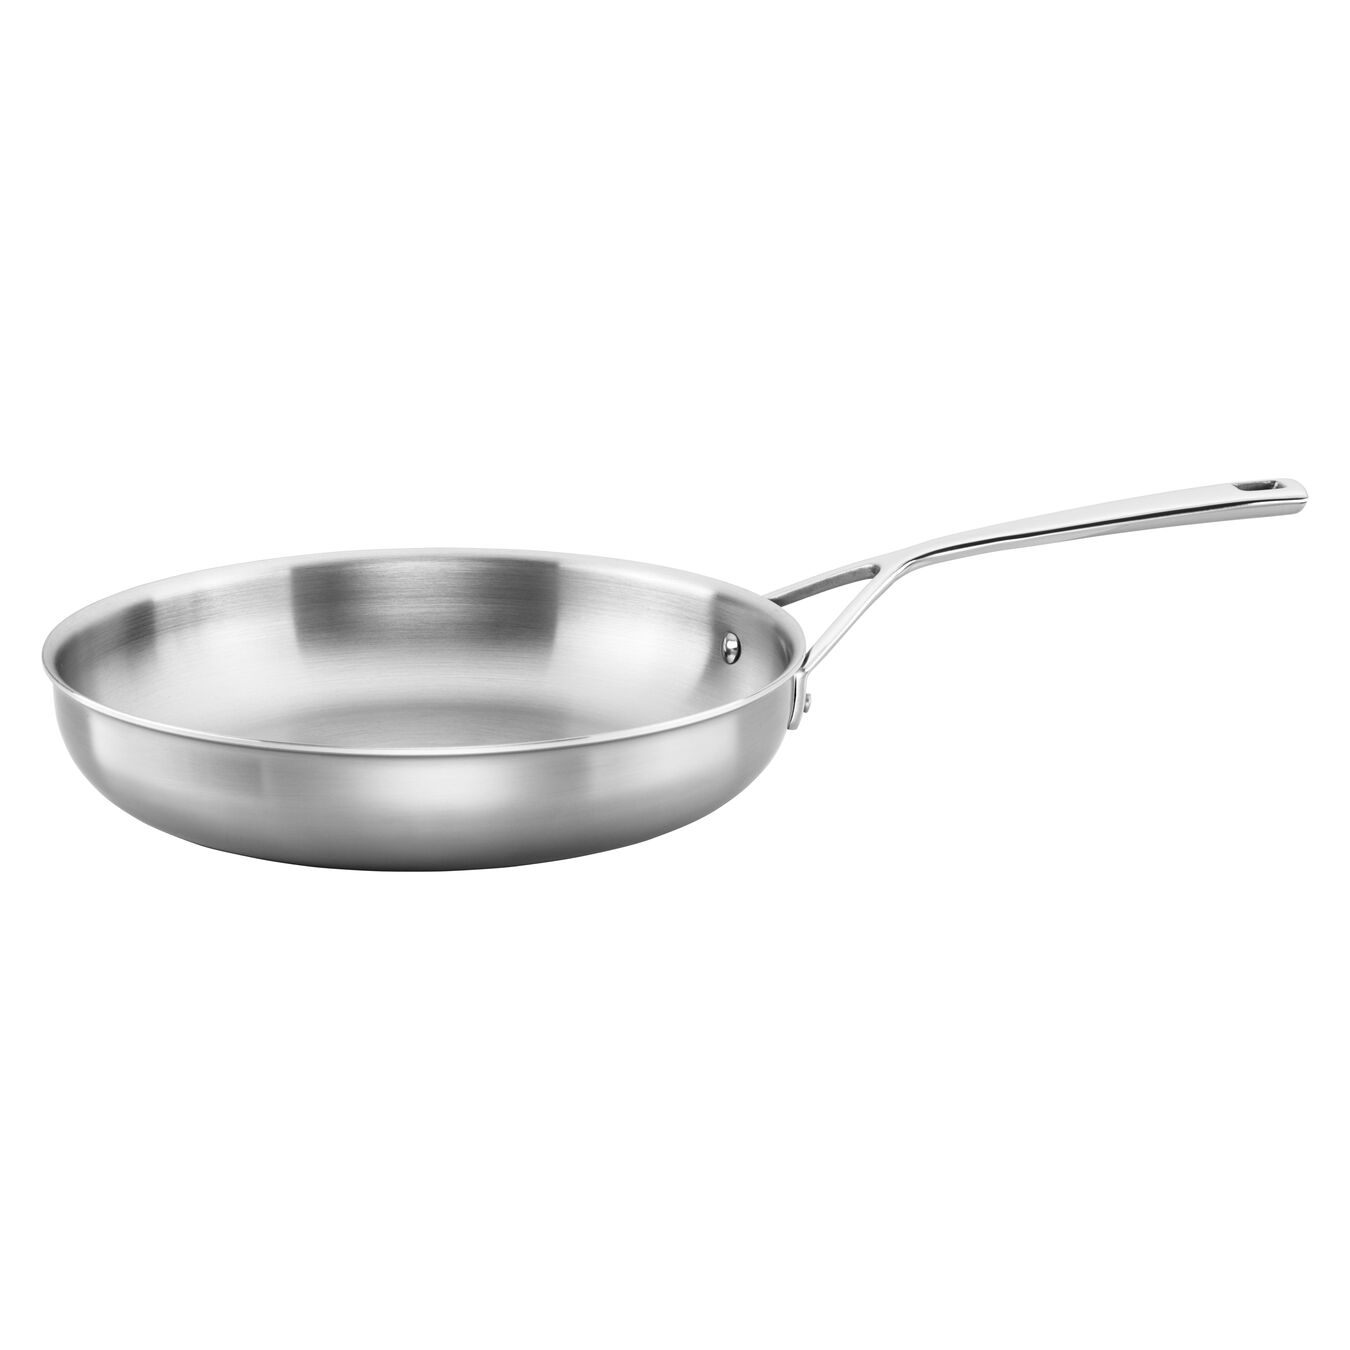 28 cm / 11 inch 18/10 Stainless Steel Frying pan,,large 1